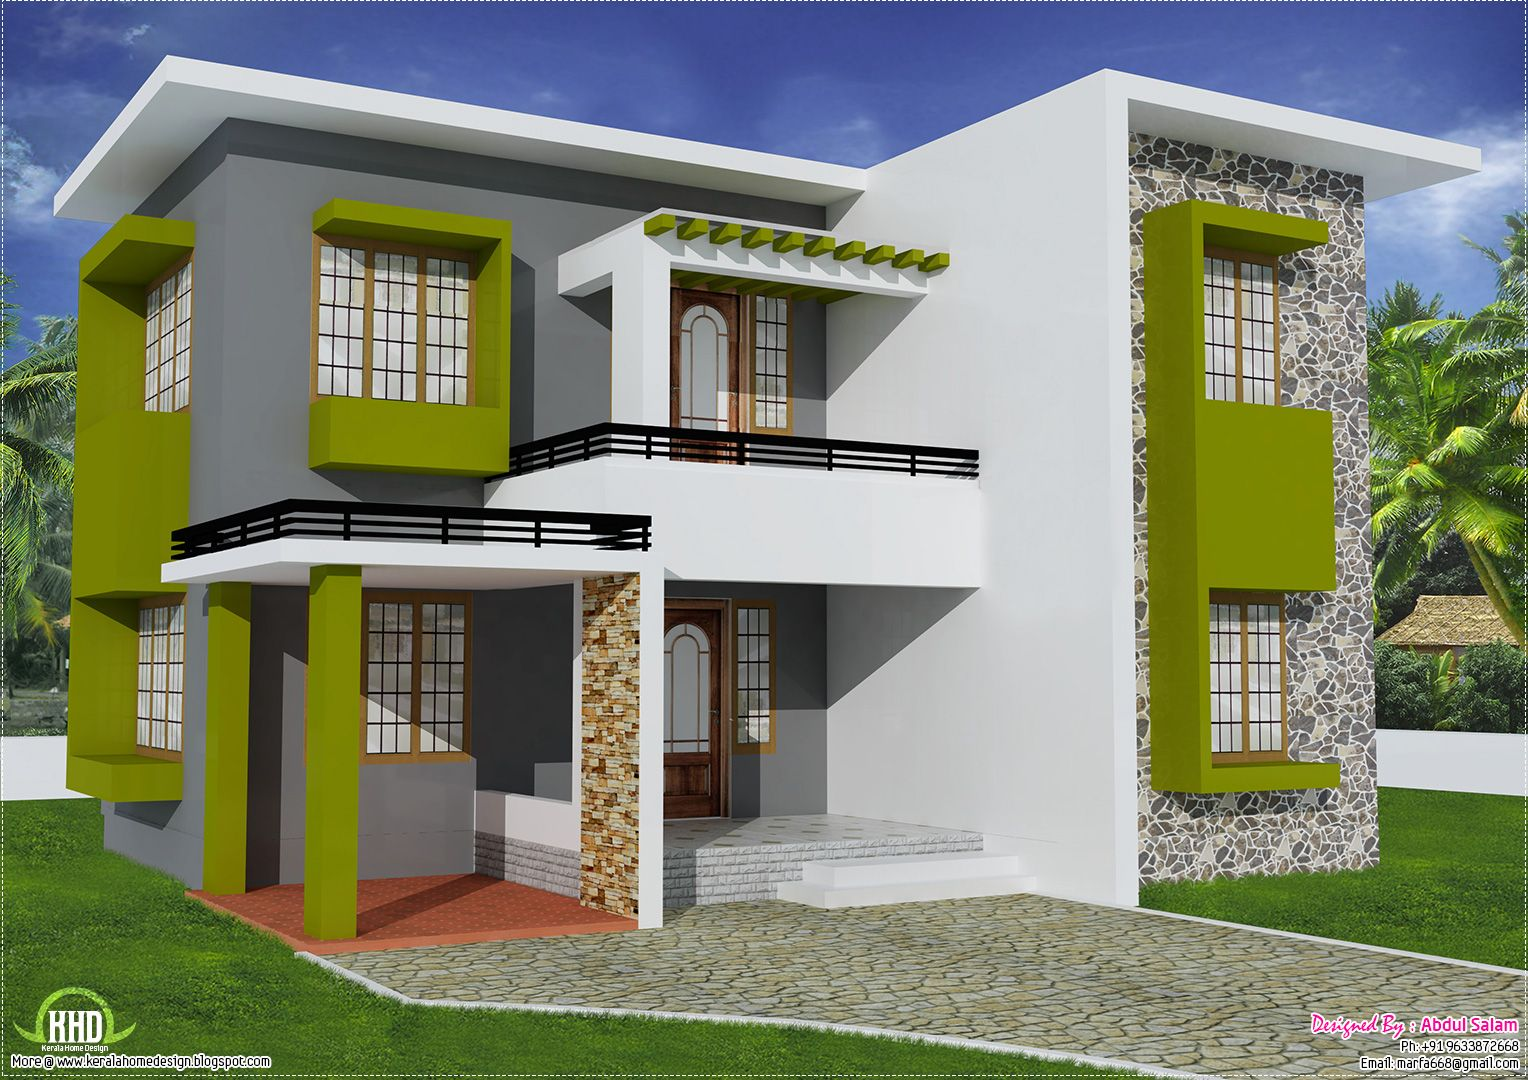 Sq feet flat roof home design house design plans roof for Small house roof design pictures